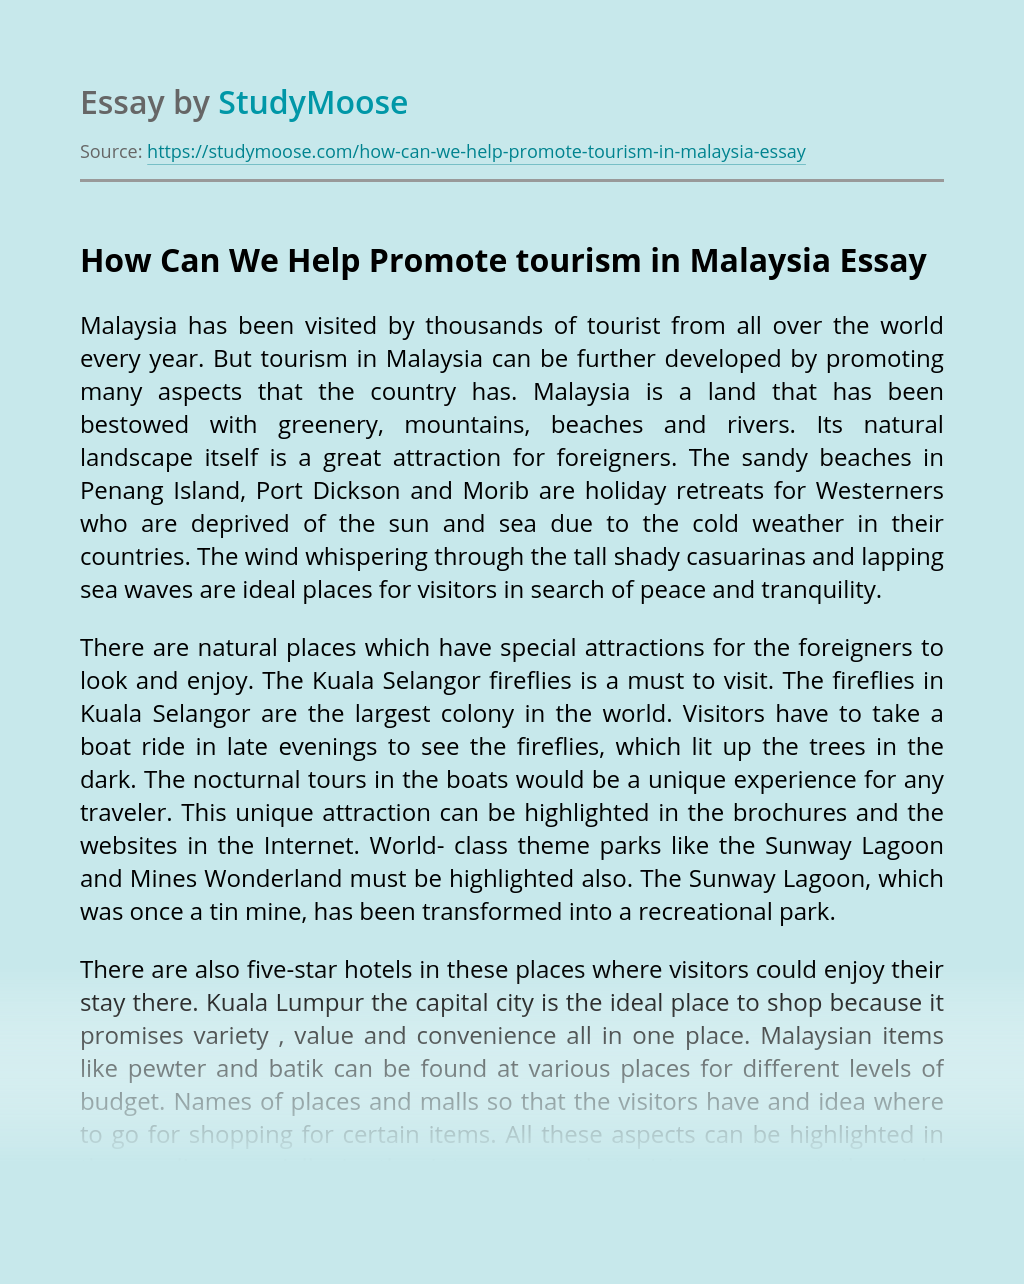 How Can We Help Promote tourism in Malaysia